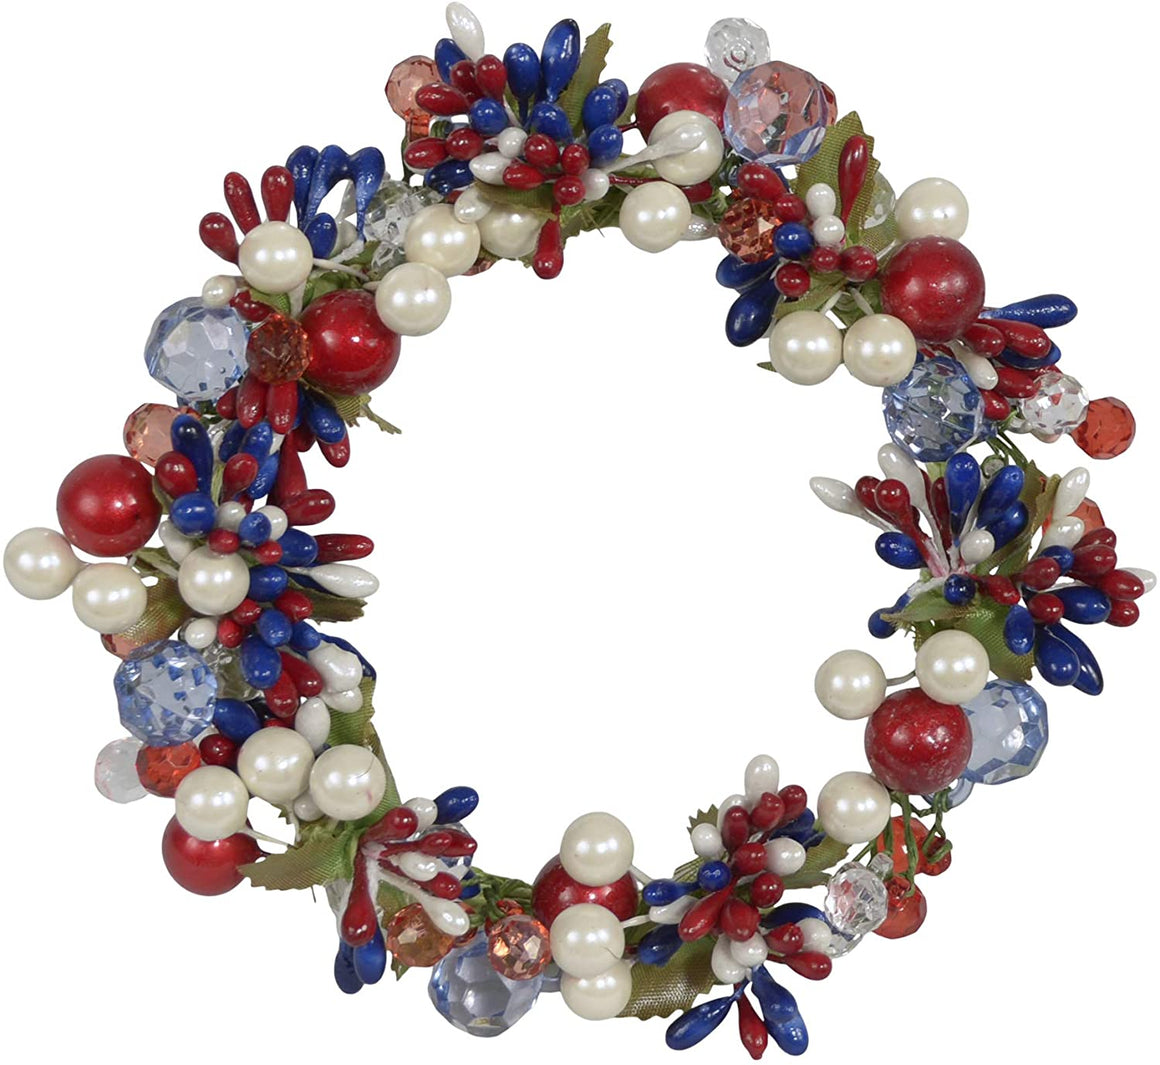 5 Inch Patriotic Red, White and Blue Candle Ring, Holds 3.75 Inch Pillar Candle